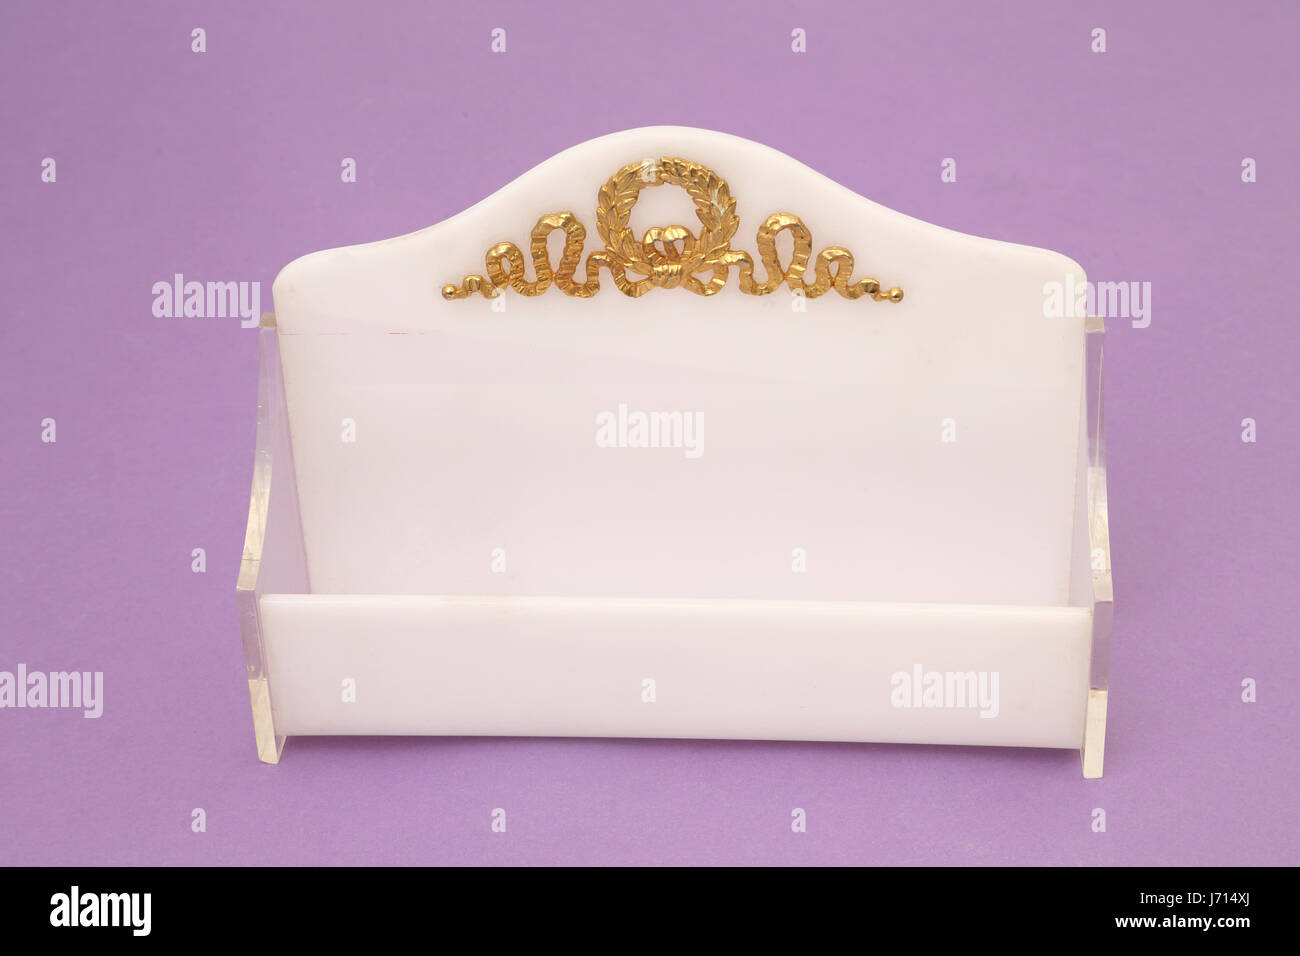 plastic letter holder with gold wreath design - Stock Image